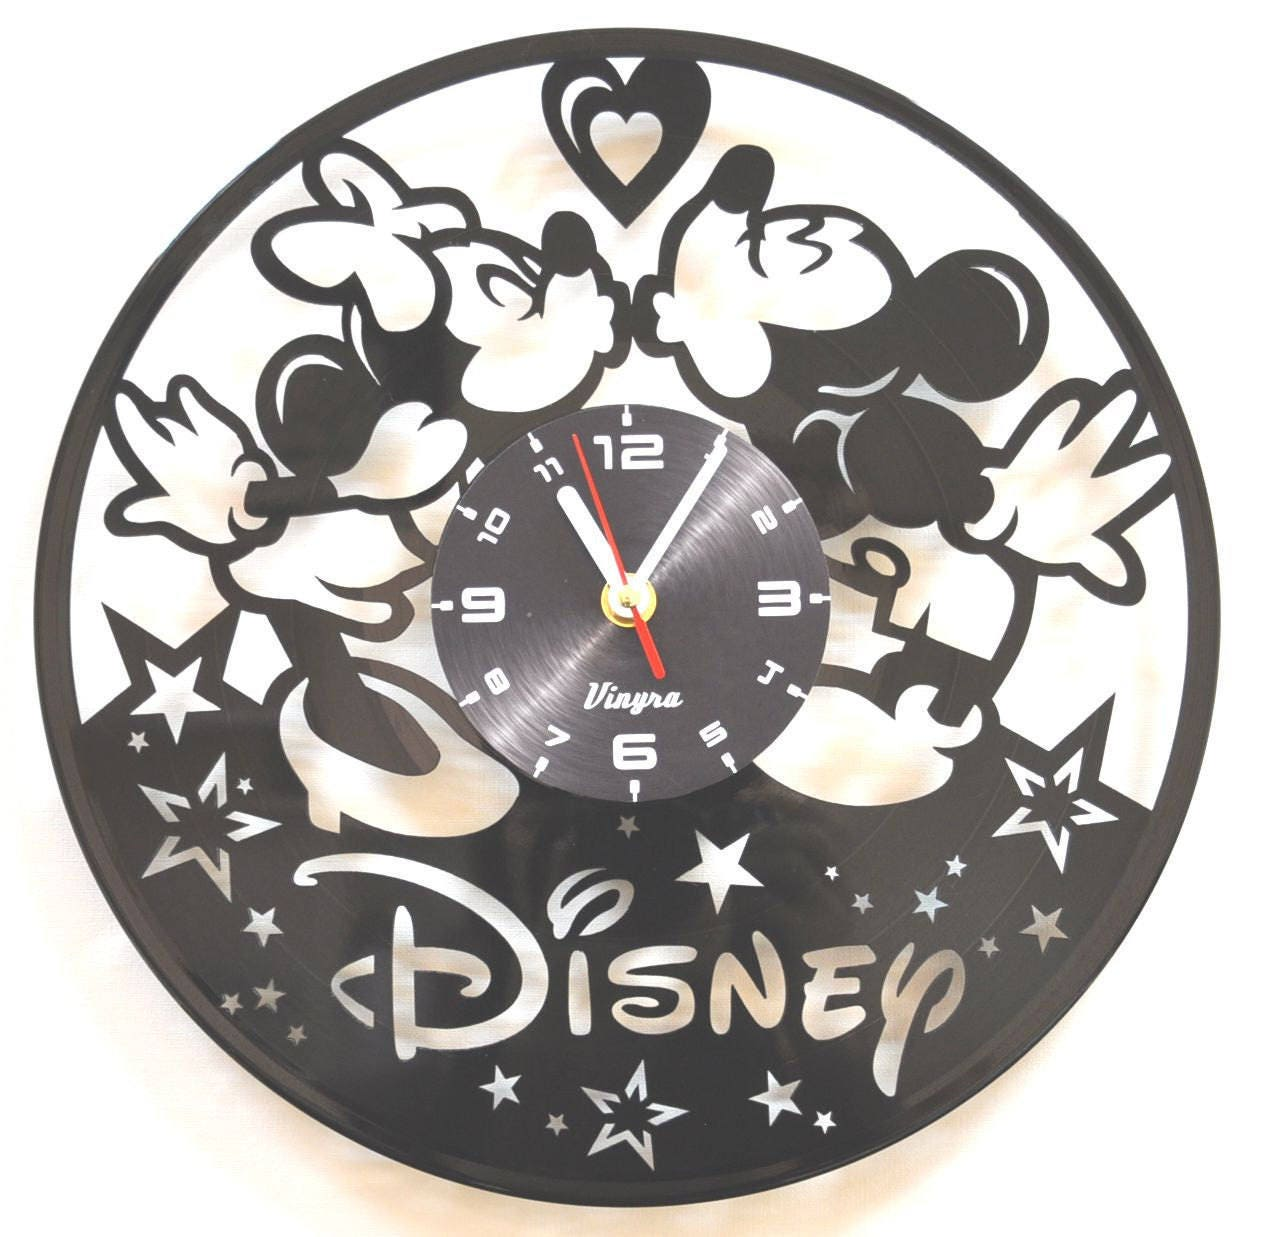 Mickey and minnie vinyl wall clock mickey mouse vinyl wall request a custom order and have something made just for you amipublicfo Gallery